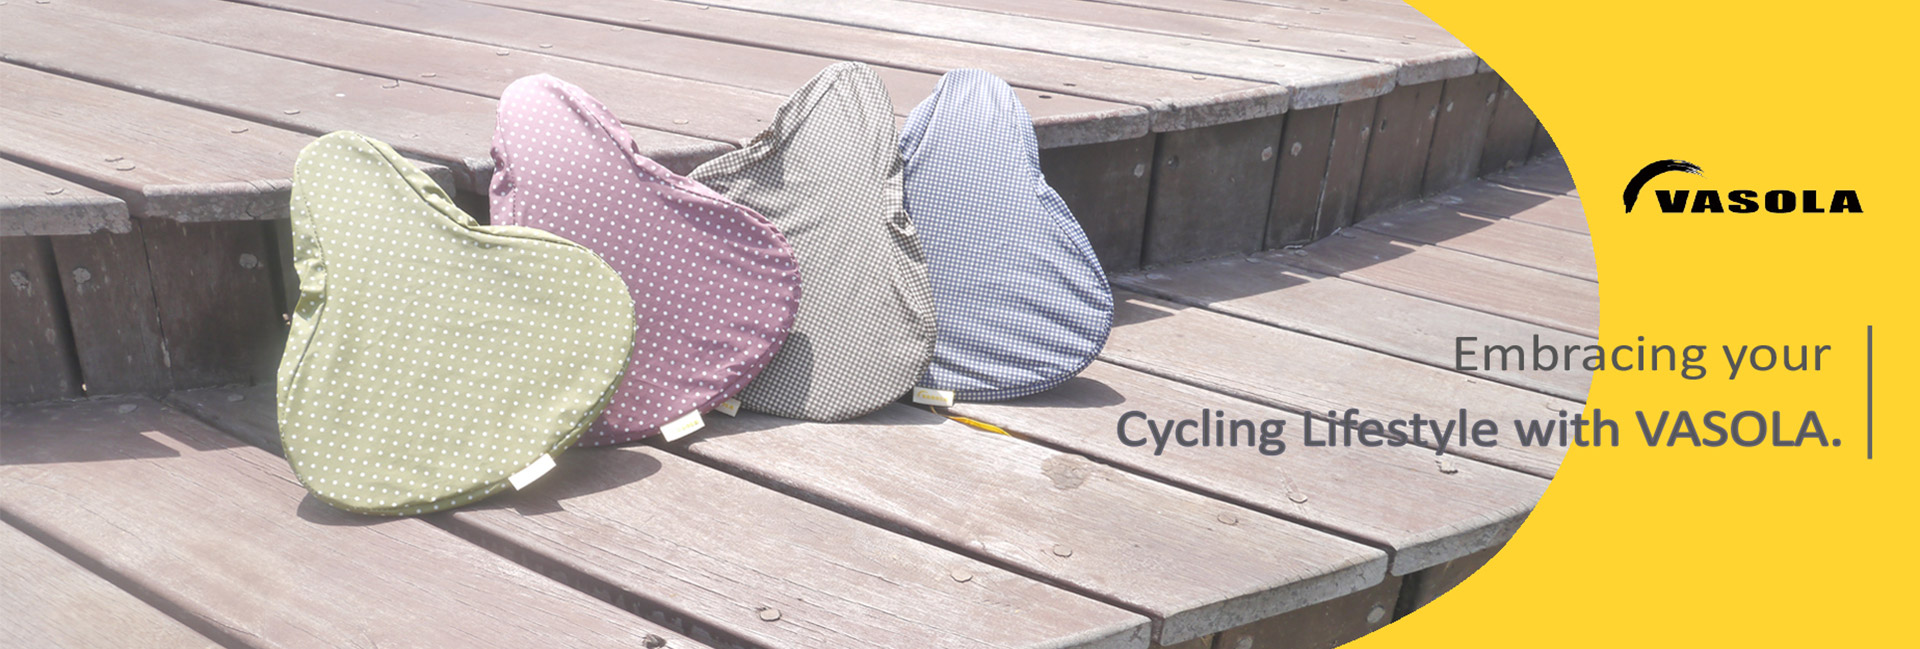 VASOLA saddle cover for cyclist